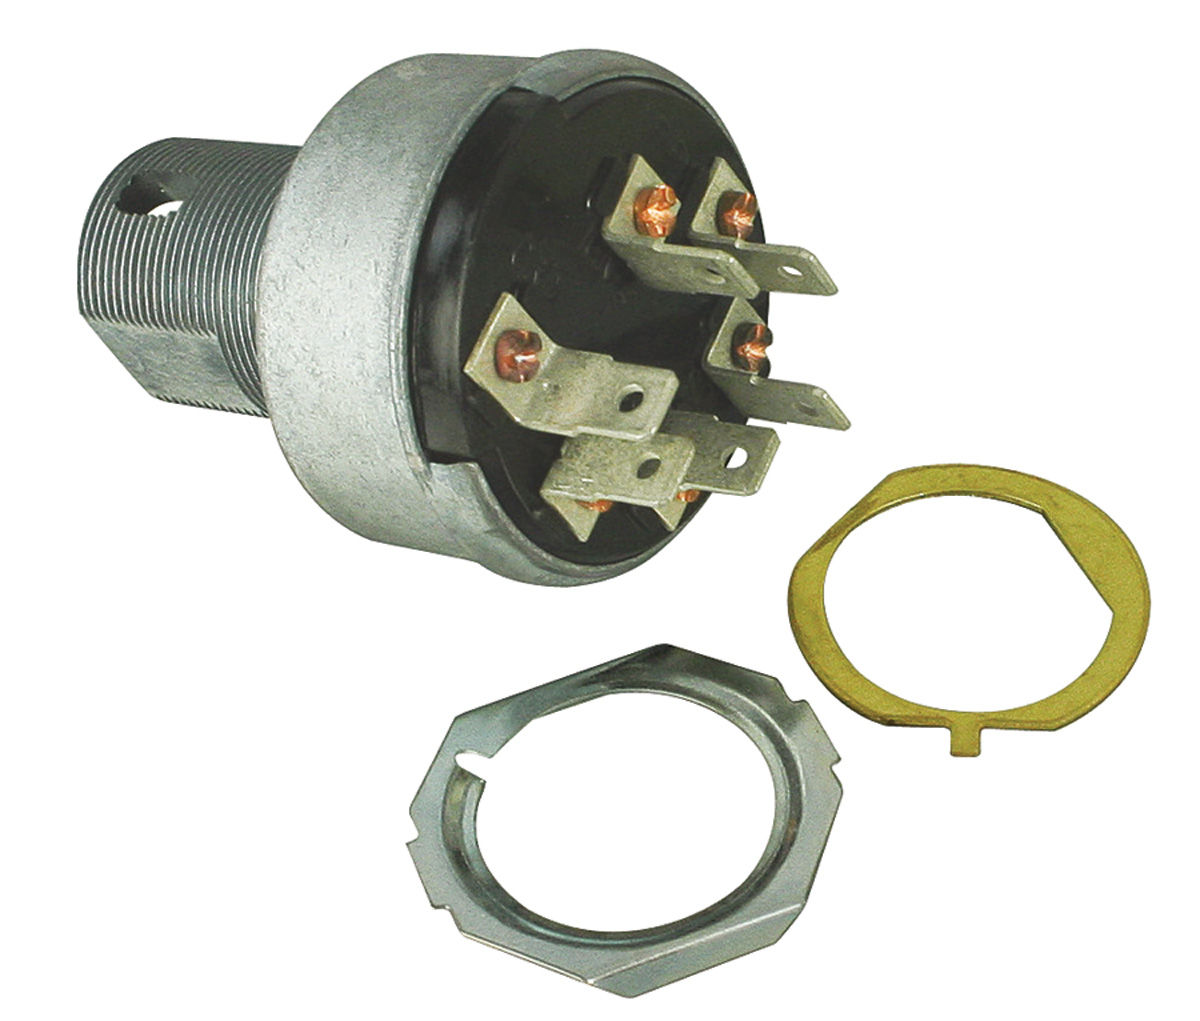 1964-65 GTO Ignition Switch W/o AC, W/o Tumbler For Years